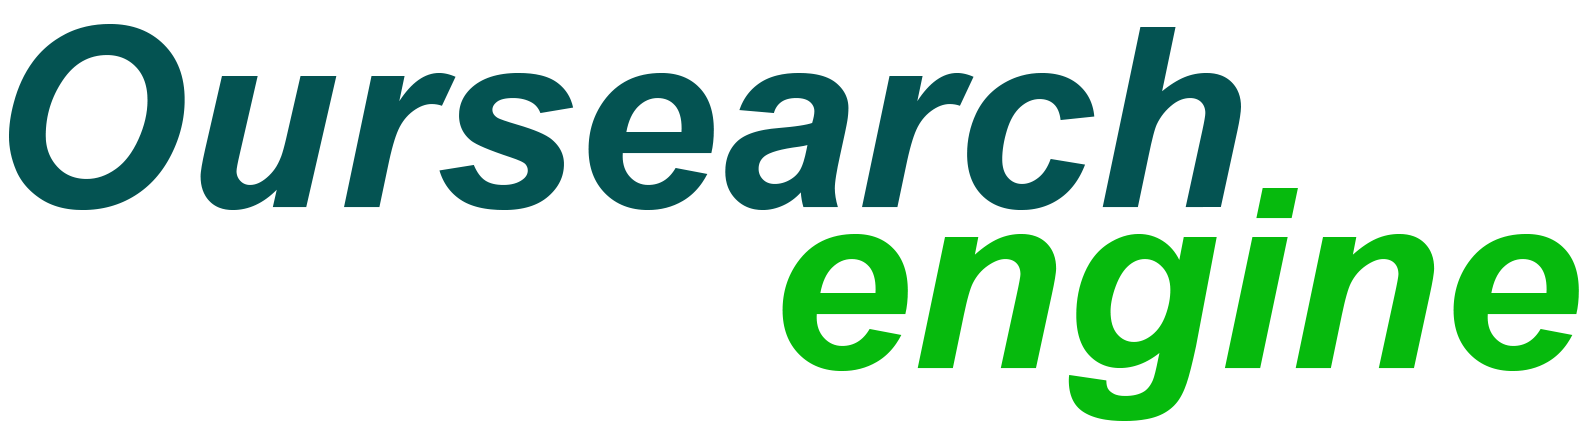 Our Search Engine